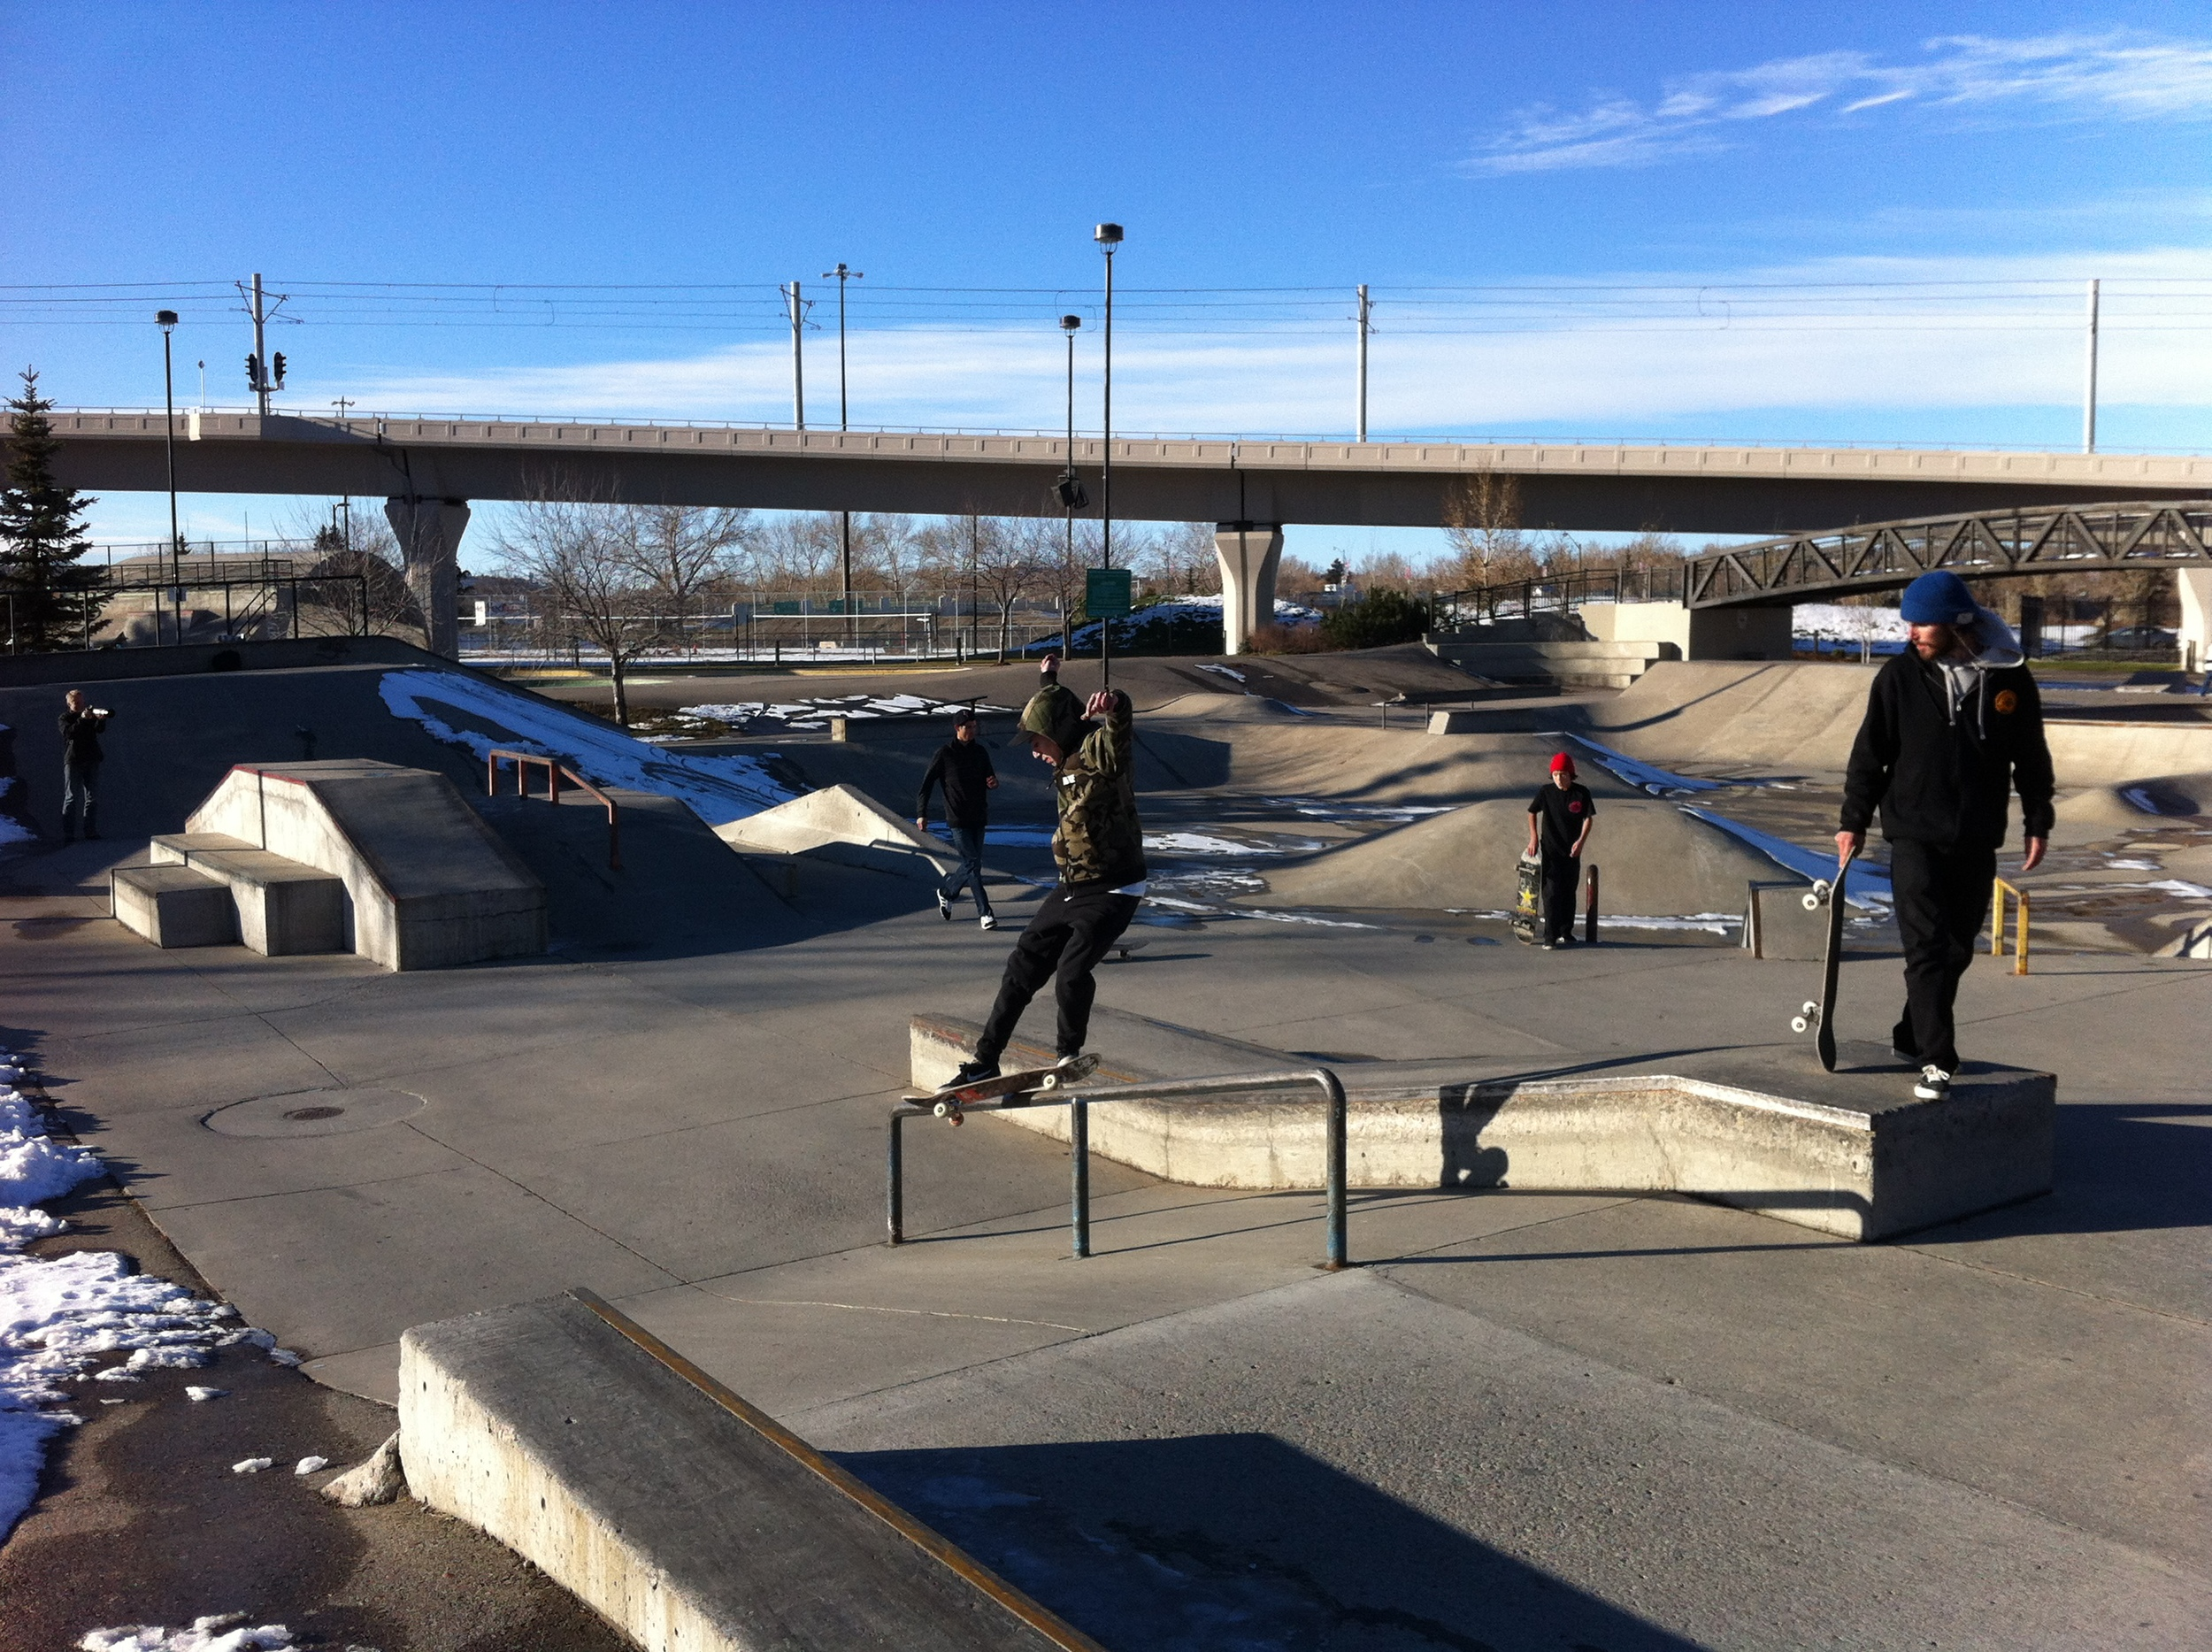 Next to the Centennial Planetarium is Shaw Millennium Park, one of the world's largest skateparks. The design of the Park with its concrete jumps, bowls and other forms is very synergistic to Long's brutalist design. In the background is the concrete West LRT bridge which enters and exits the downtown at the Planetarium, making it a dramatic gateway.